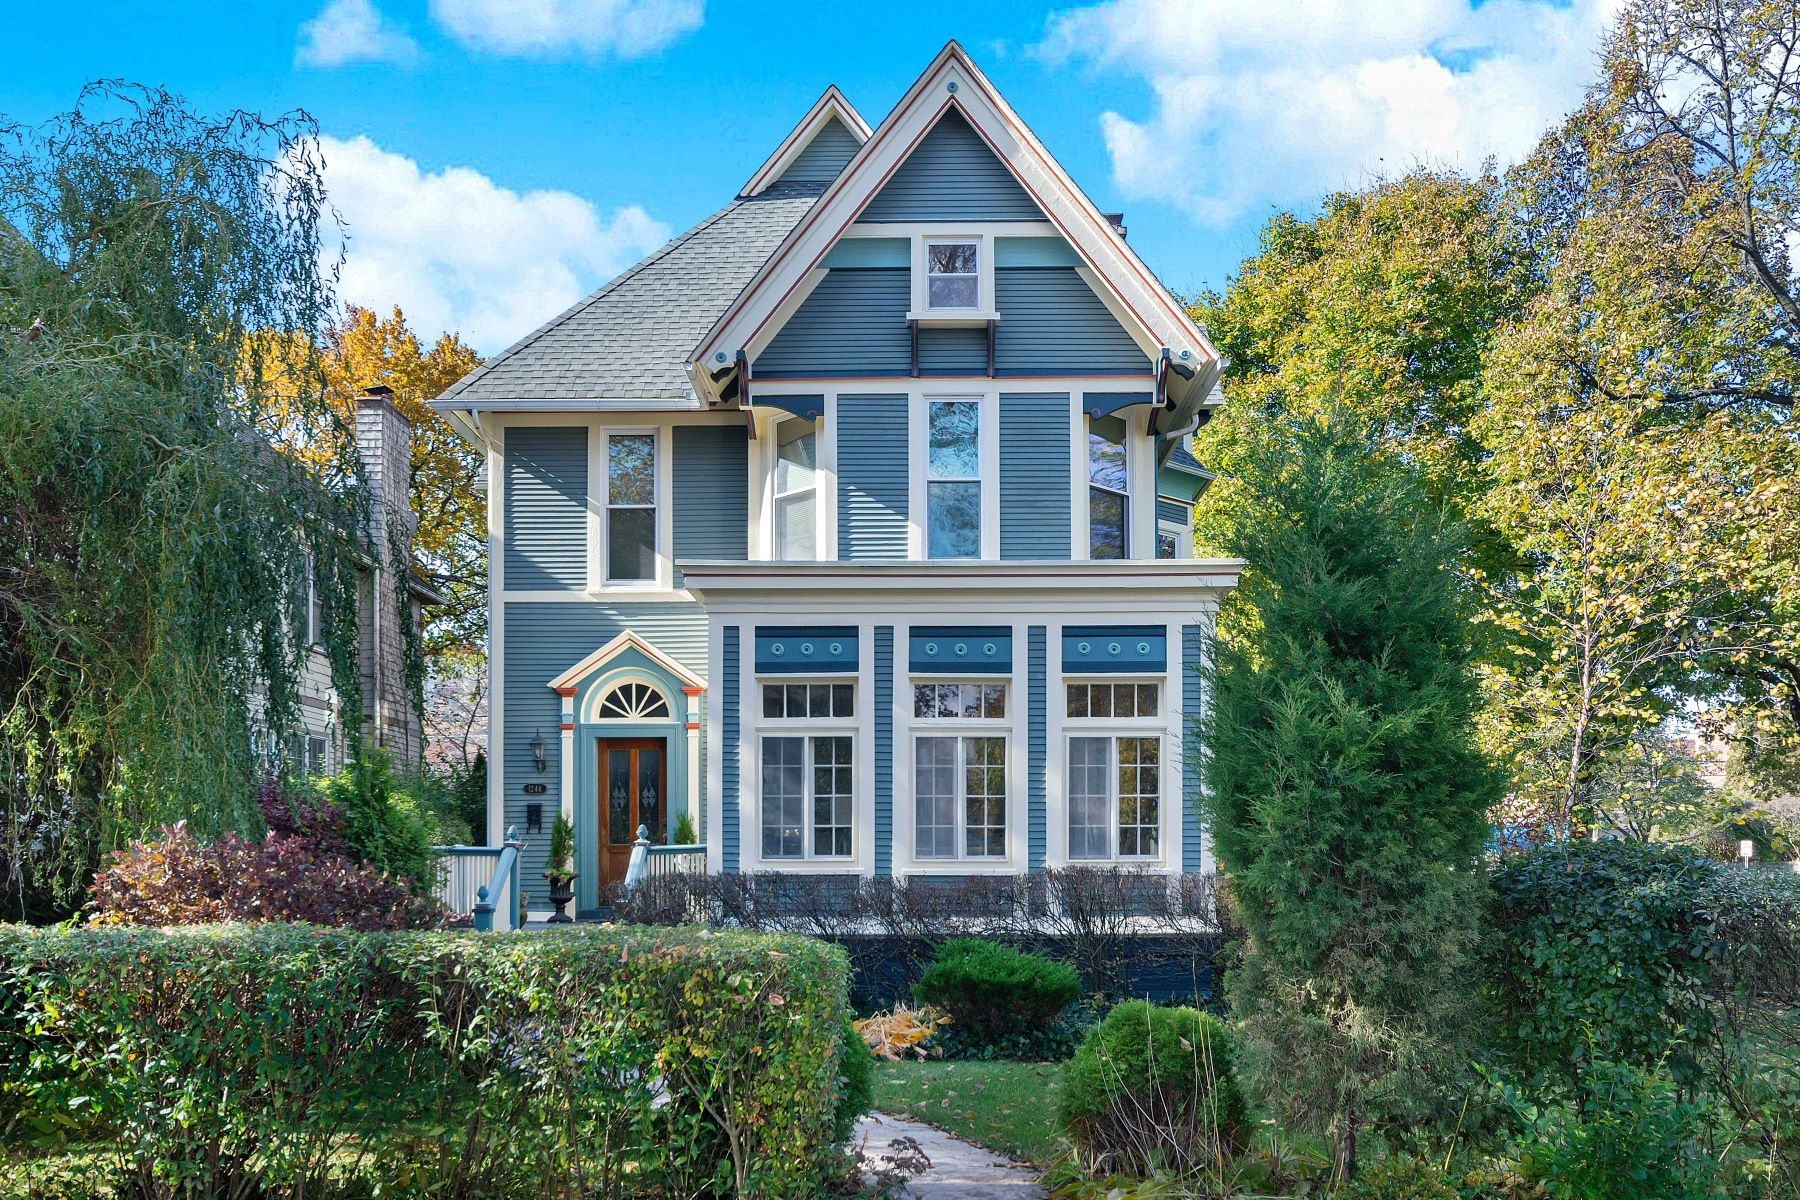 Single Family Homes for Active at Stunning Landmark Victorian 1246 Hinman Avenue Evanston, Illinois 60202 United States